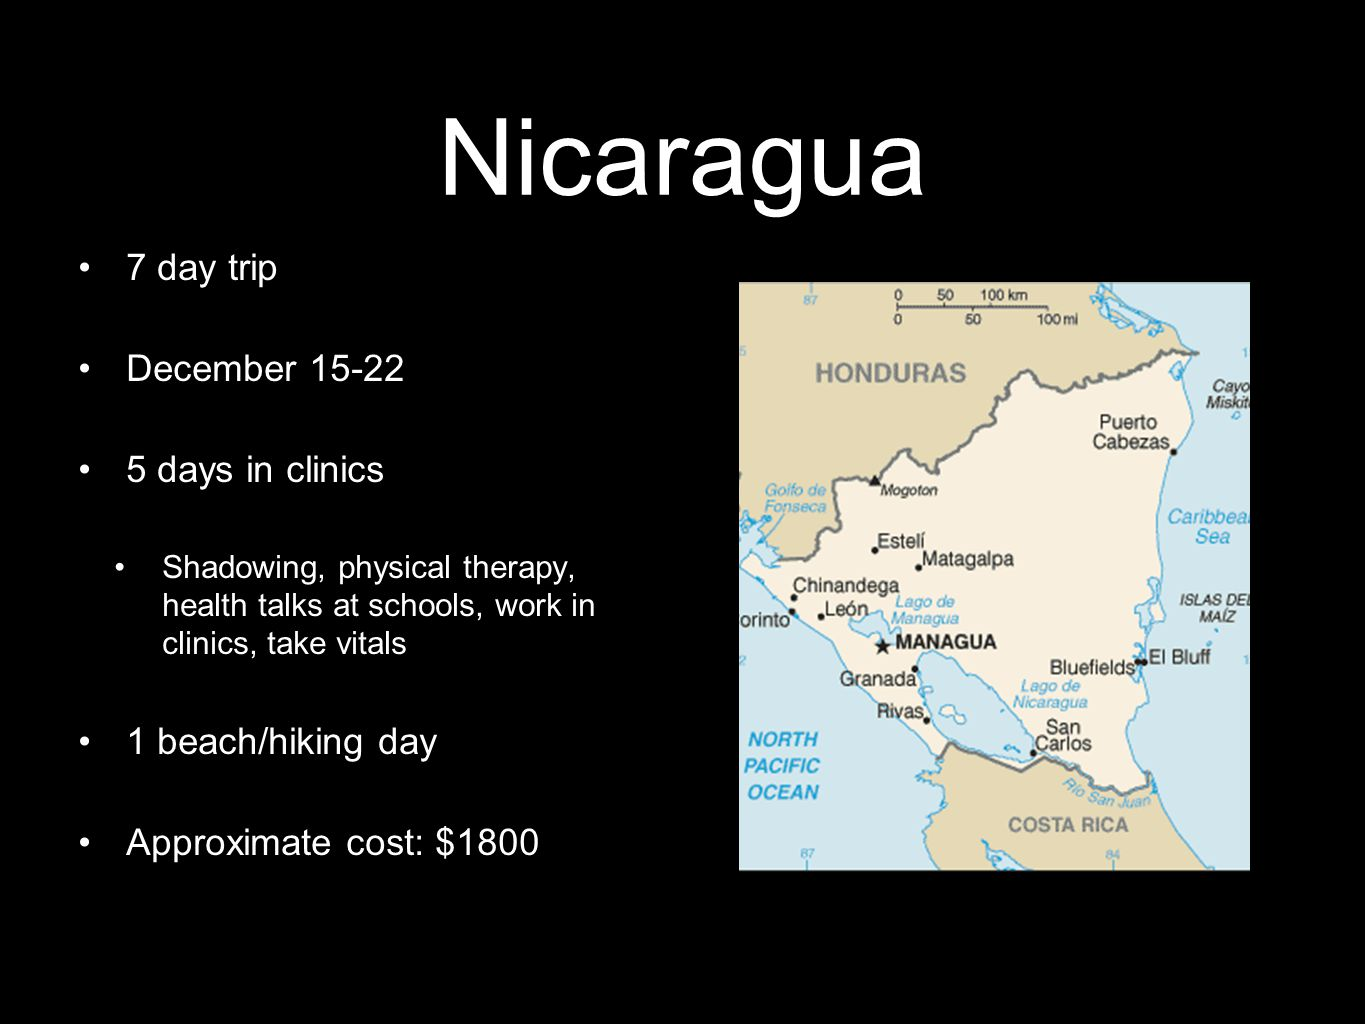 Nicaragua 7 day trip December 15-22 5 days in clinics Shadowing, physical therapy, health talks at schools, work in clinics, take vitals 1 beach/hiking day Approximate cost: $1800